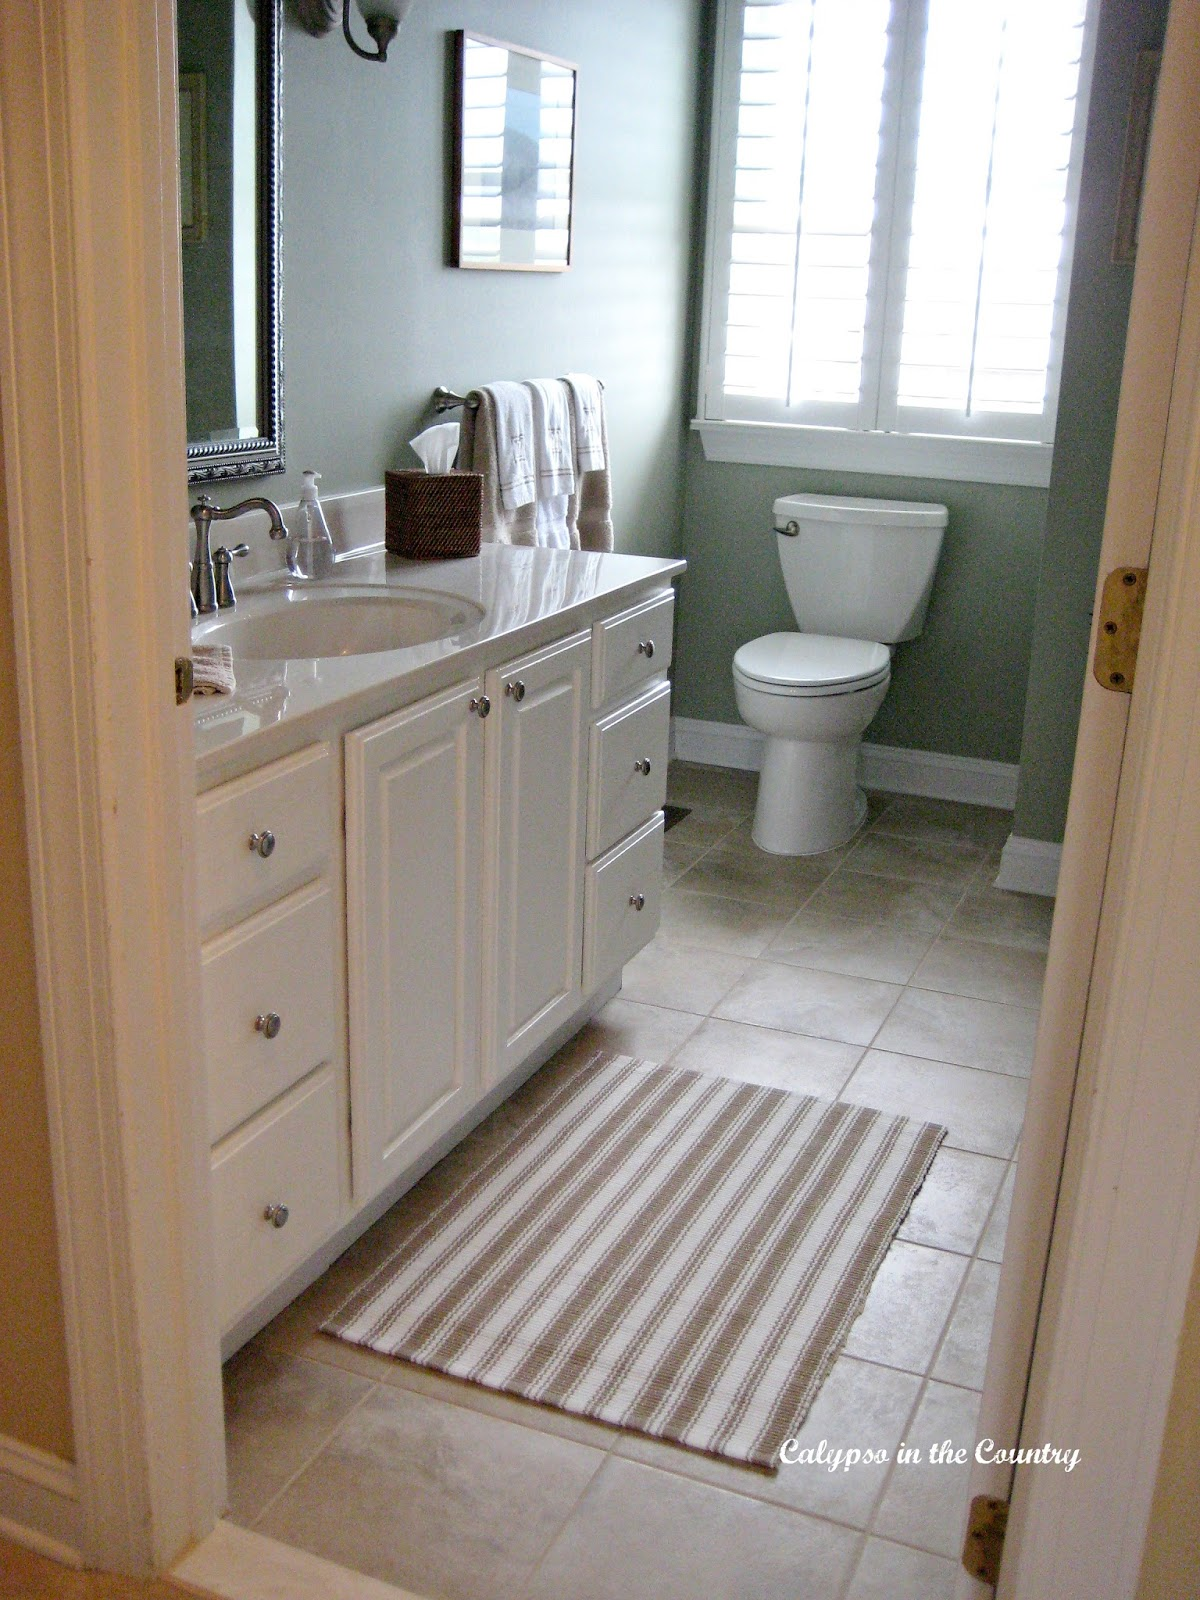 Guest bathroom with plantation shutters